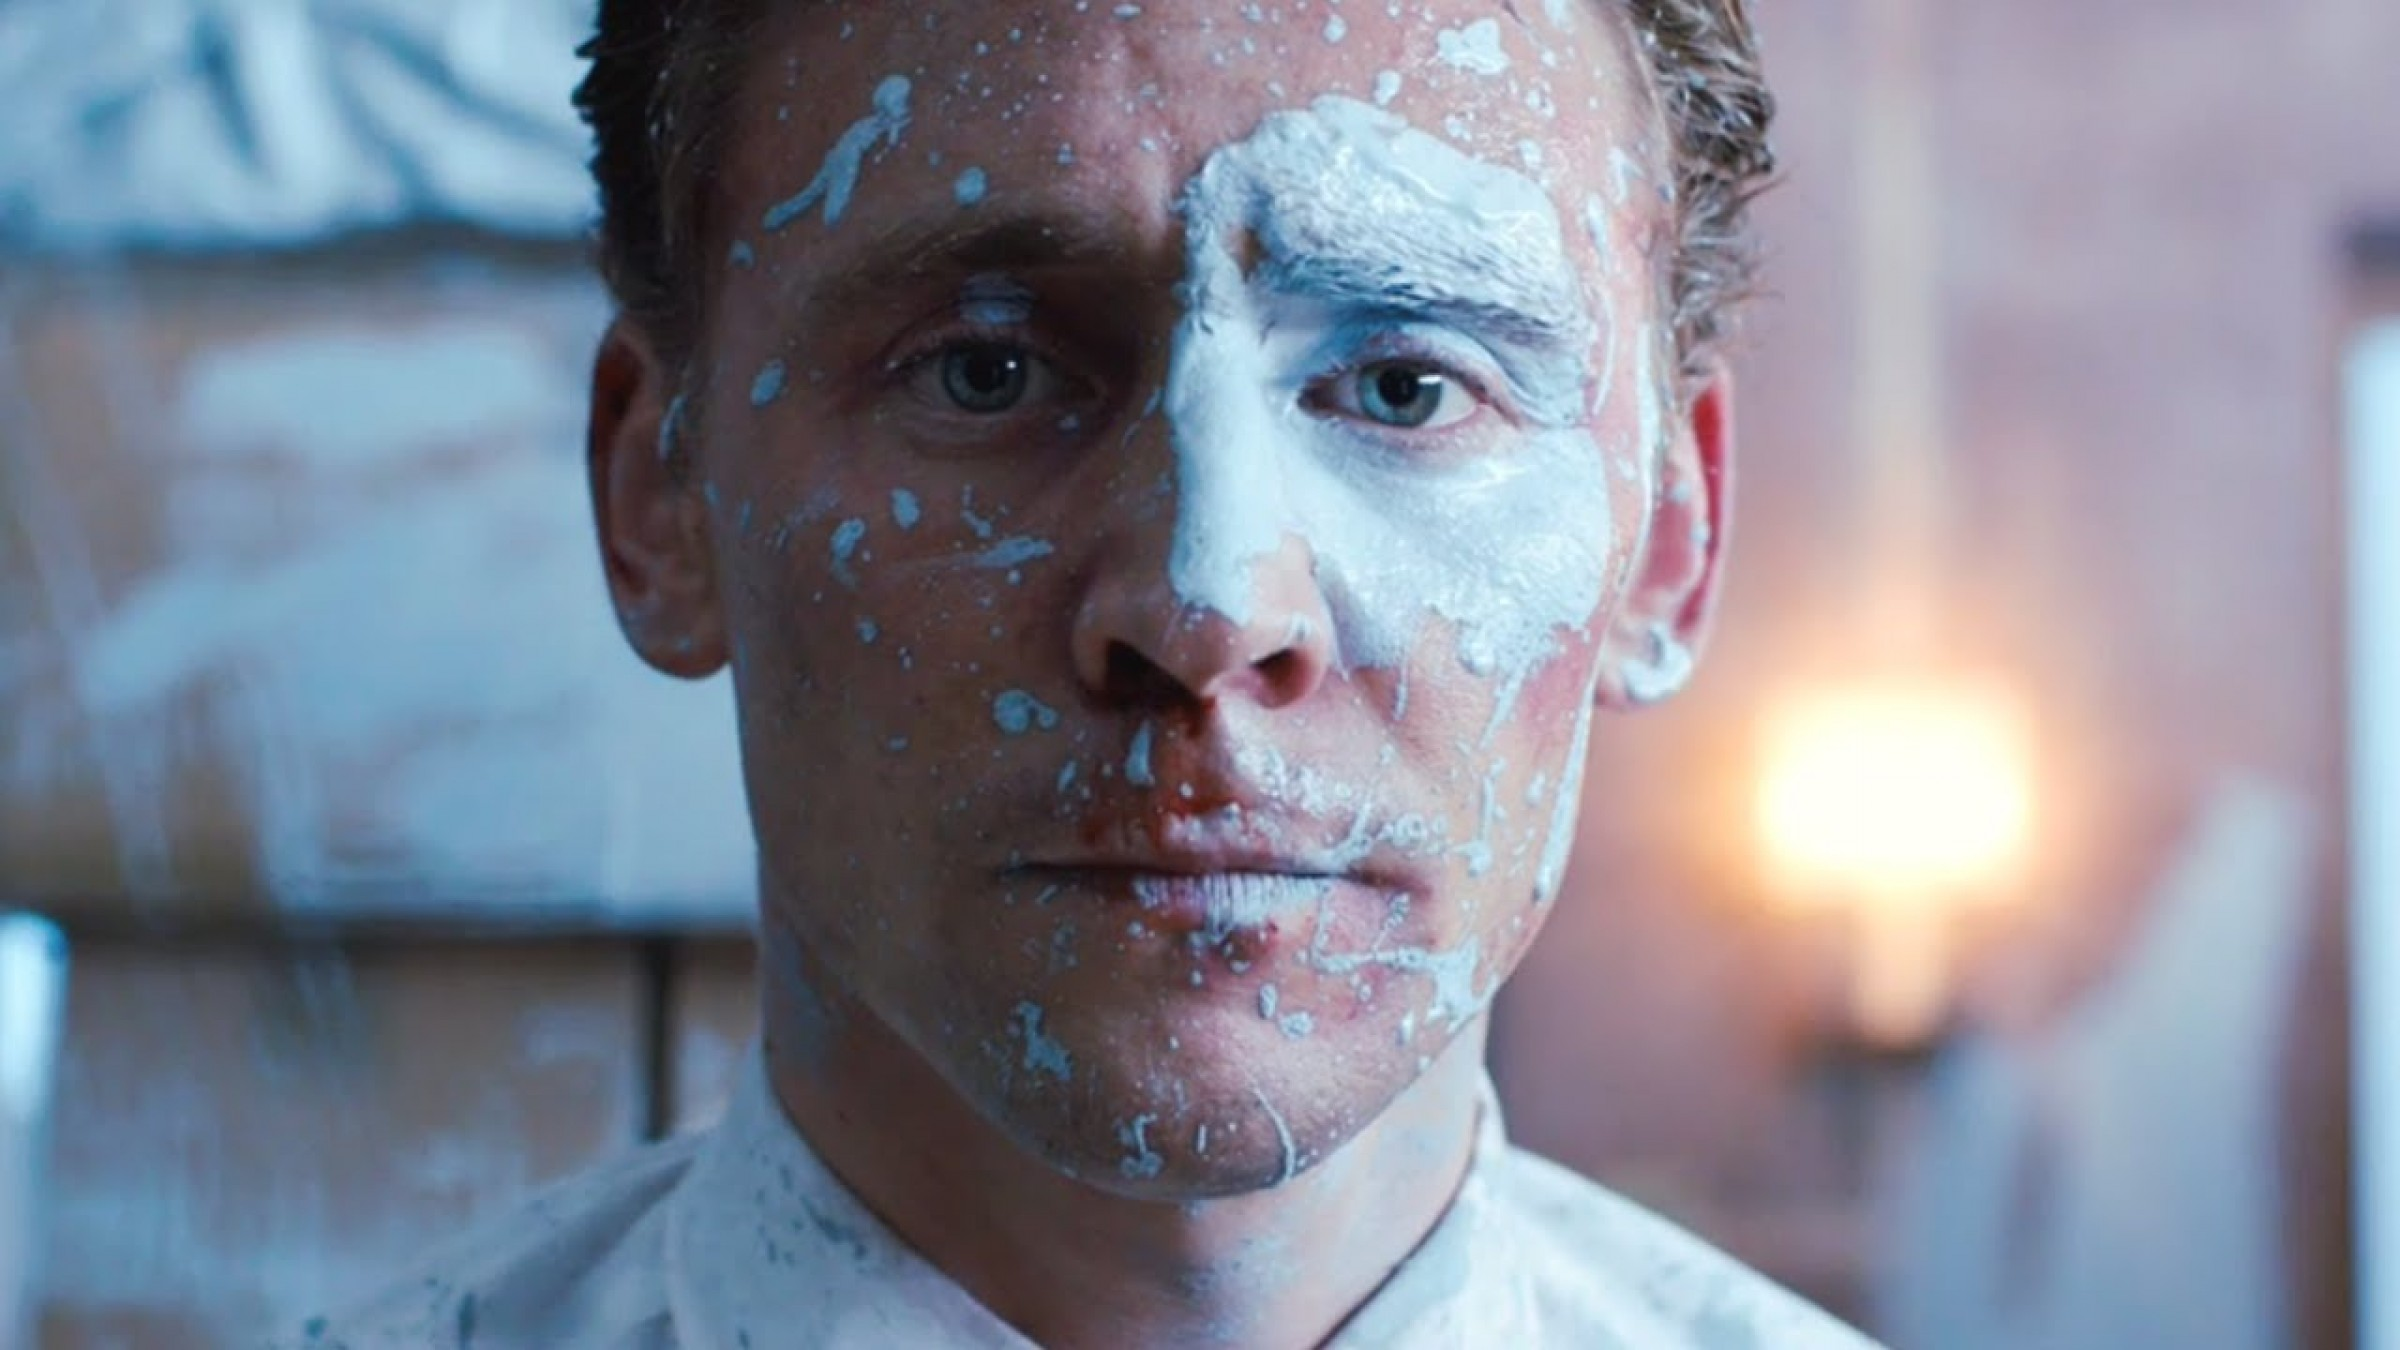 'High-Rise' Director on Why He Storyboards With 1,000 Drawings and Edits His Own Movies